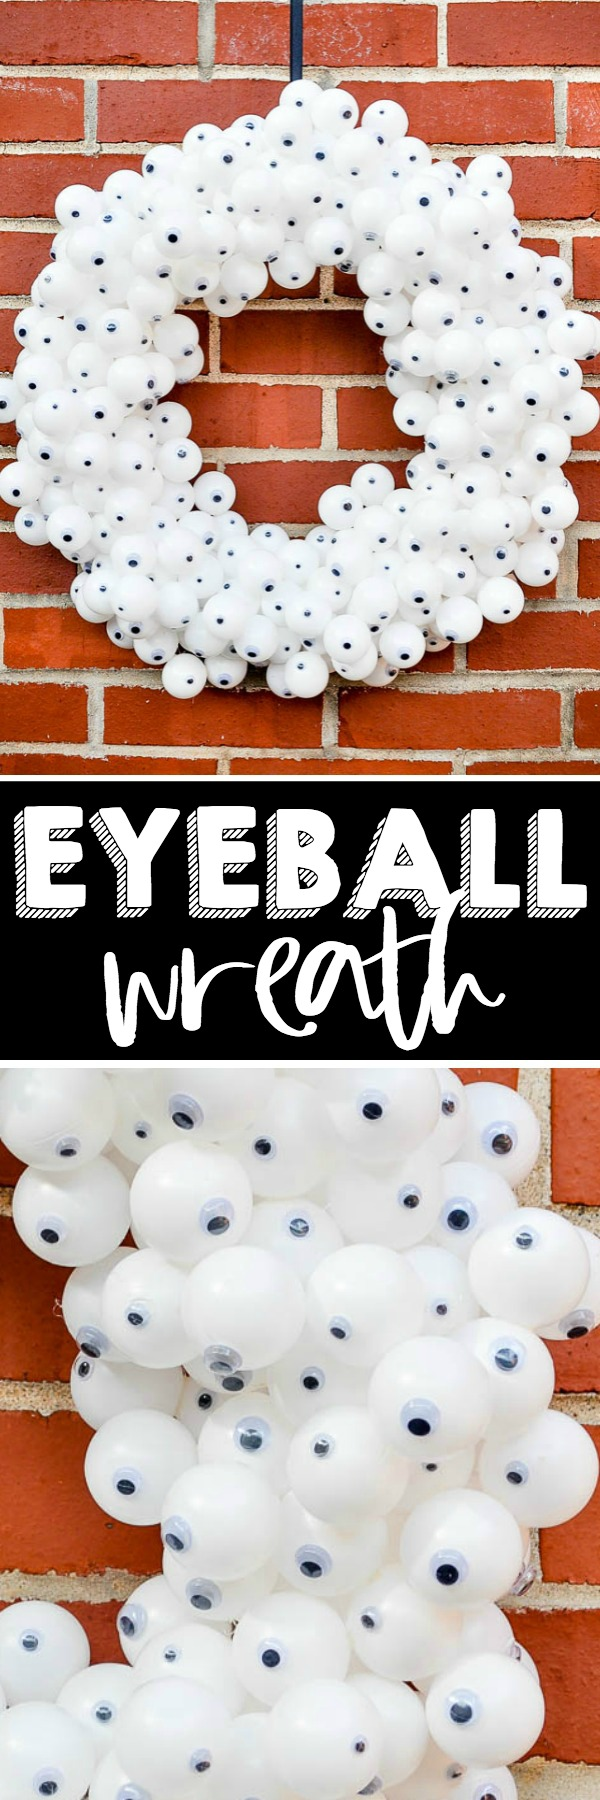 Create a fun and spooky Eyeball Wreath for your DIY Halloween decor! Made with inexpensive products and a lot of hot glue, it's an easy Halloween Wreath your trick or treaters will love! | The Love Nerds